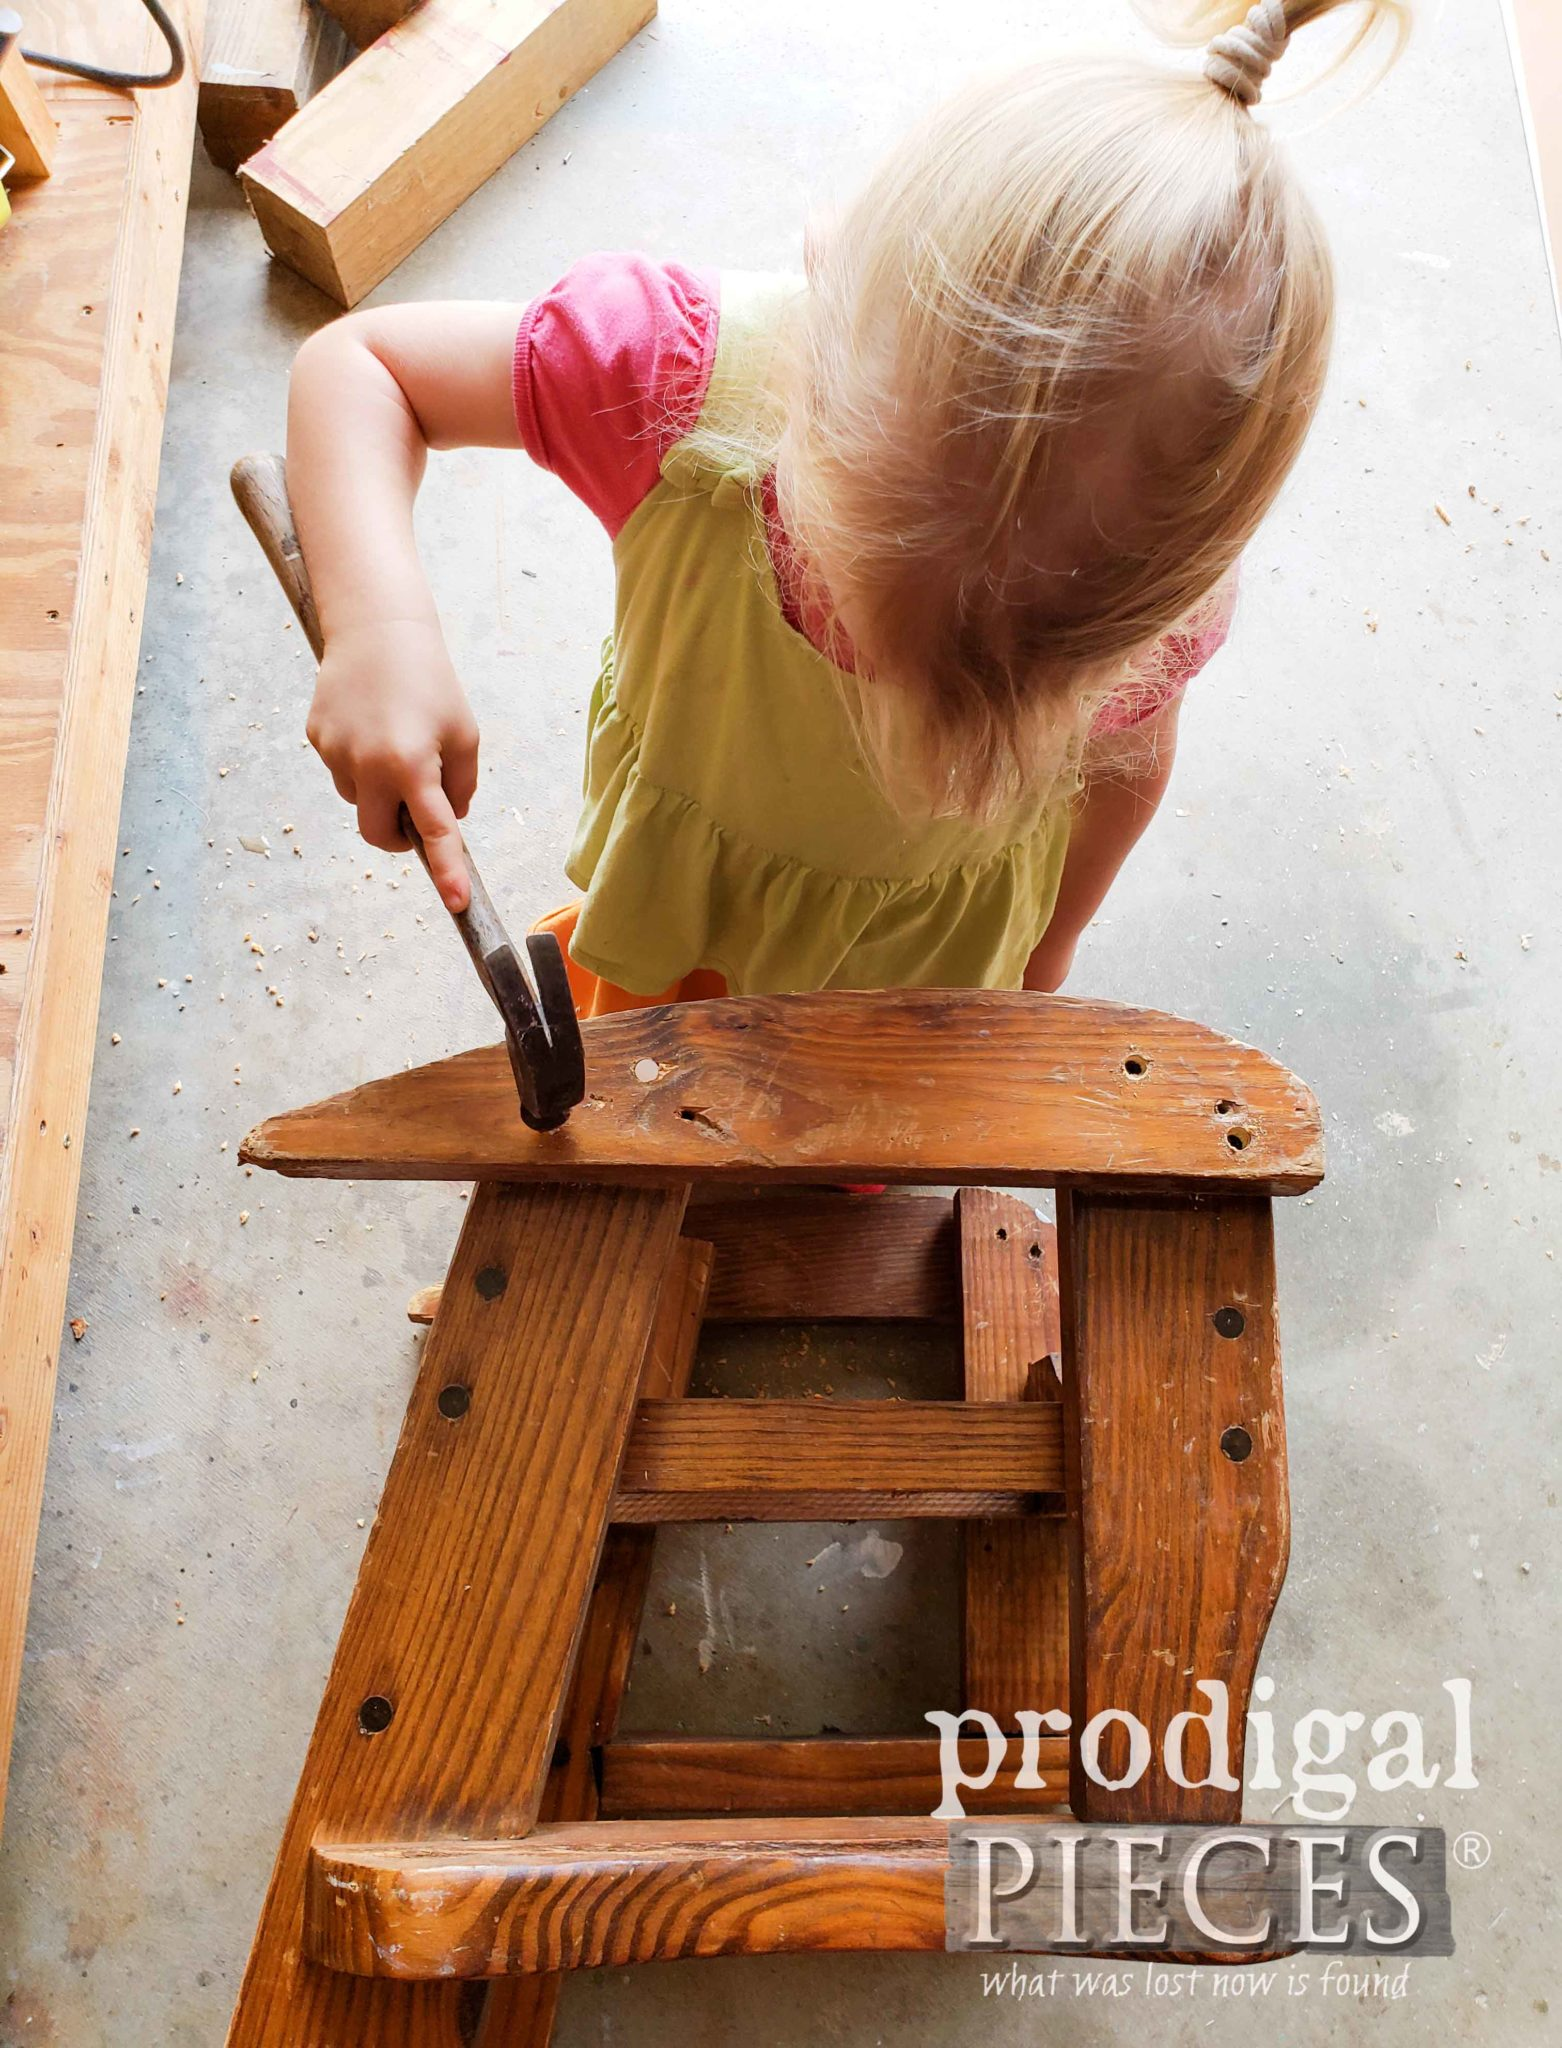 Toddler Helping Mama with Furniture | Prodigal Pieces | prodigalpieces.com